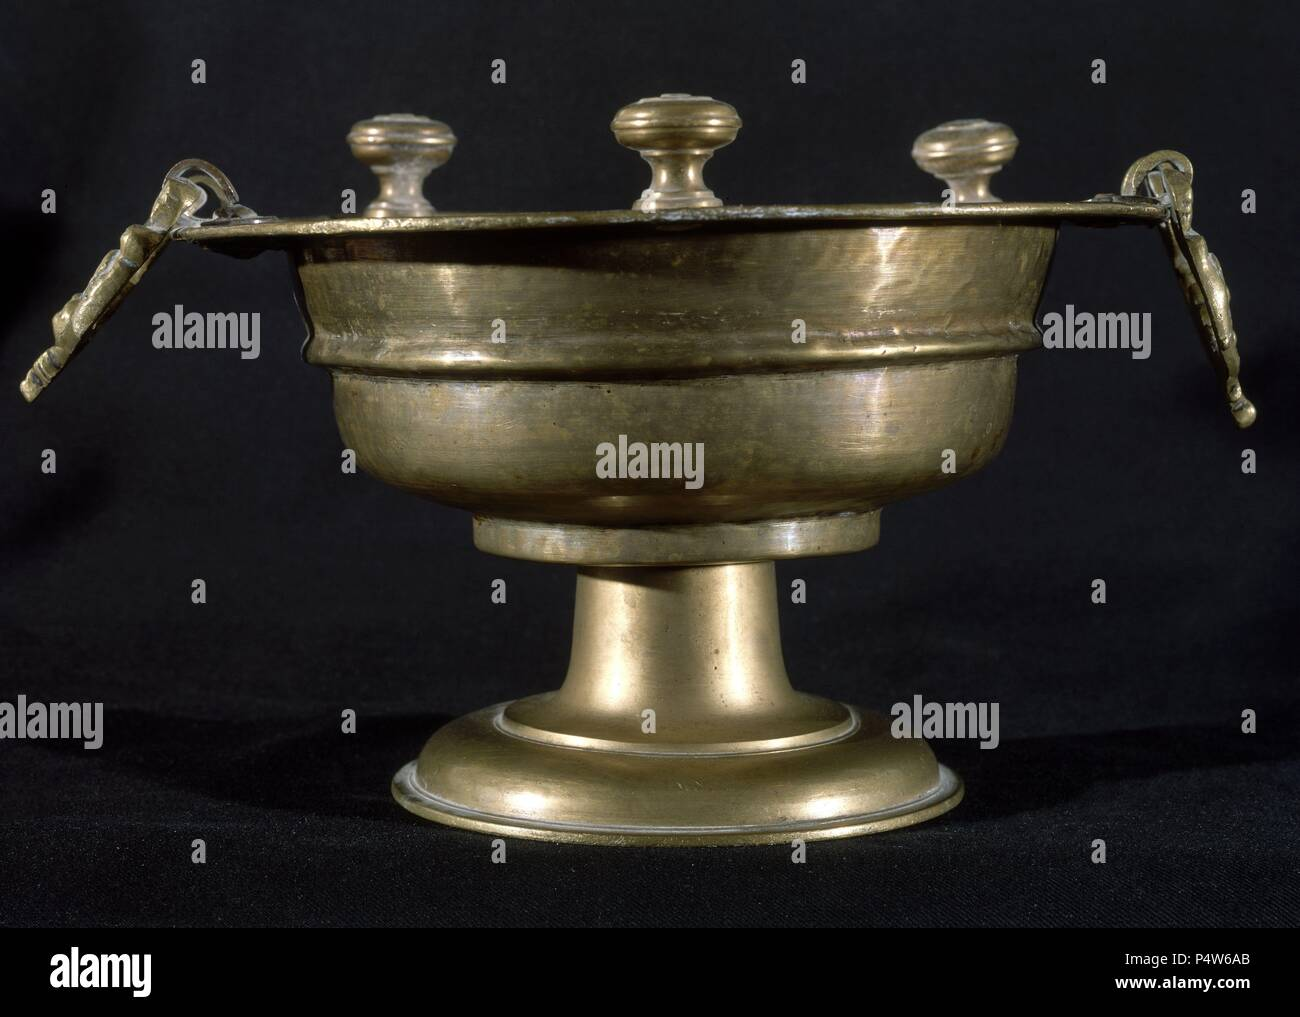 Bedpan High Resolution Stock Photography And Images Alamy